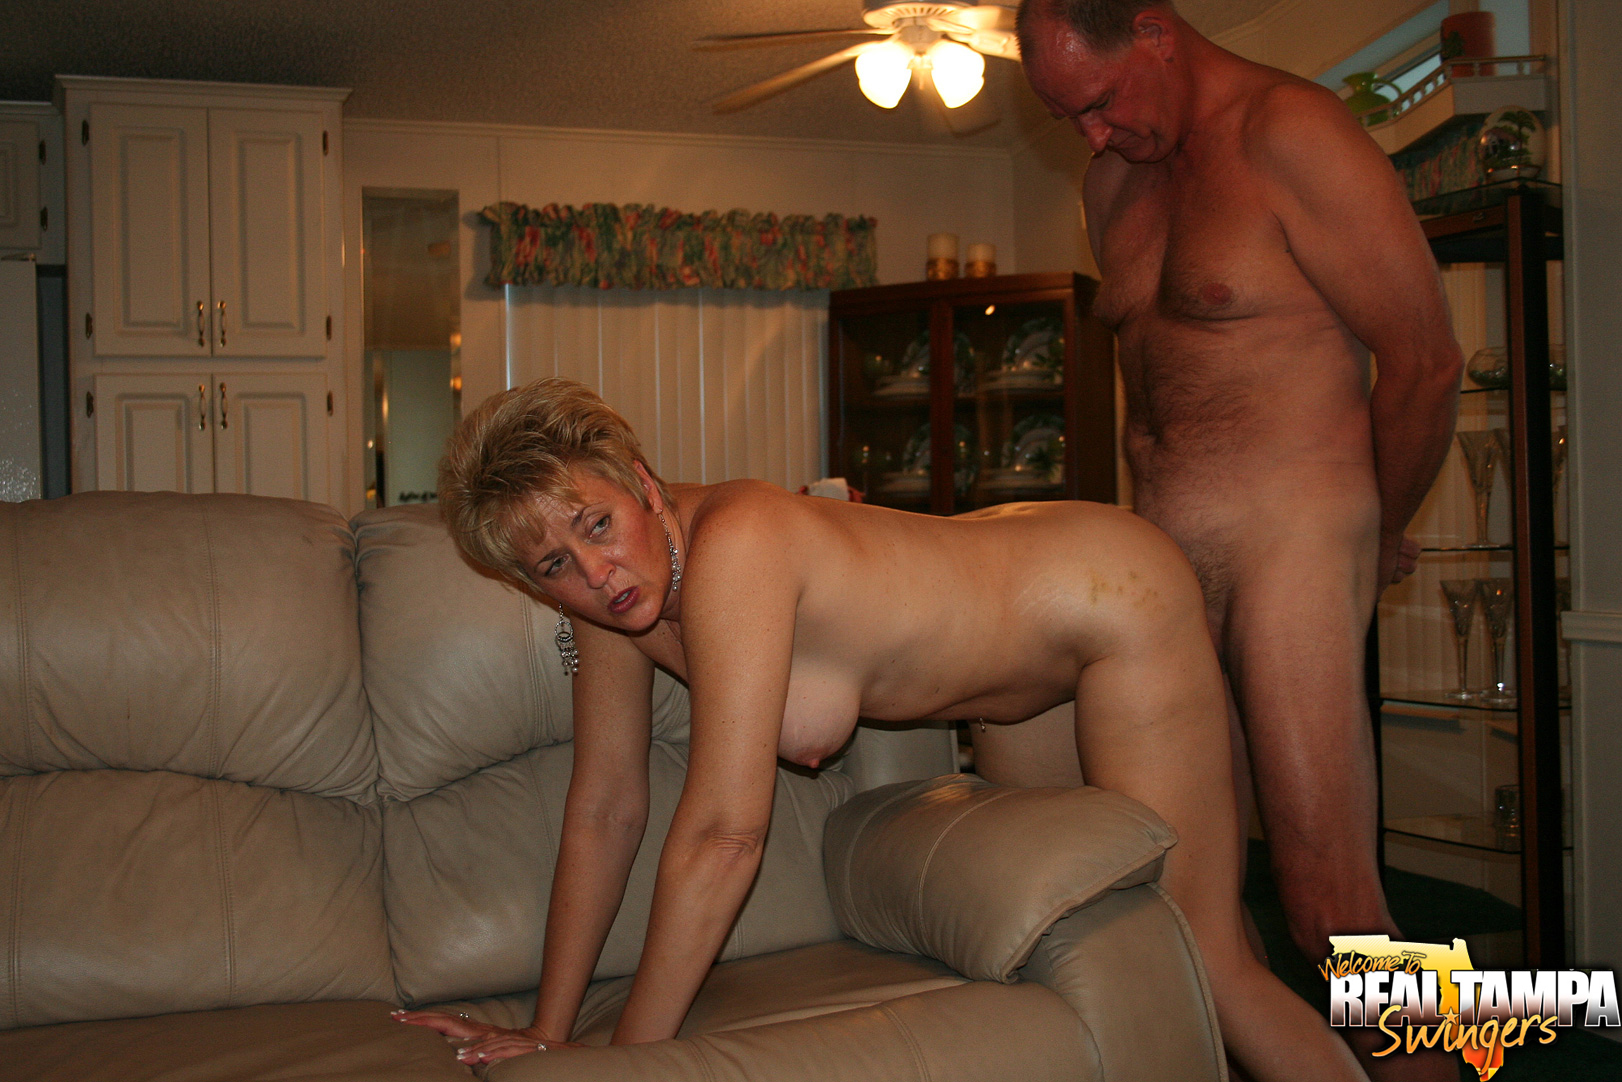 Free real tampa swingers videos — img 5